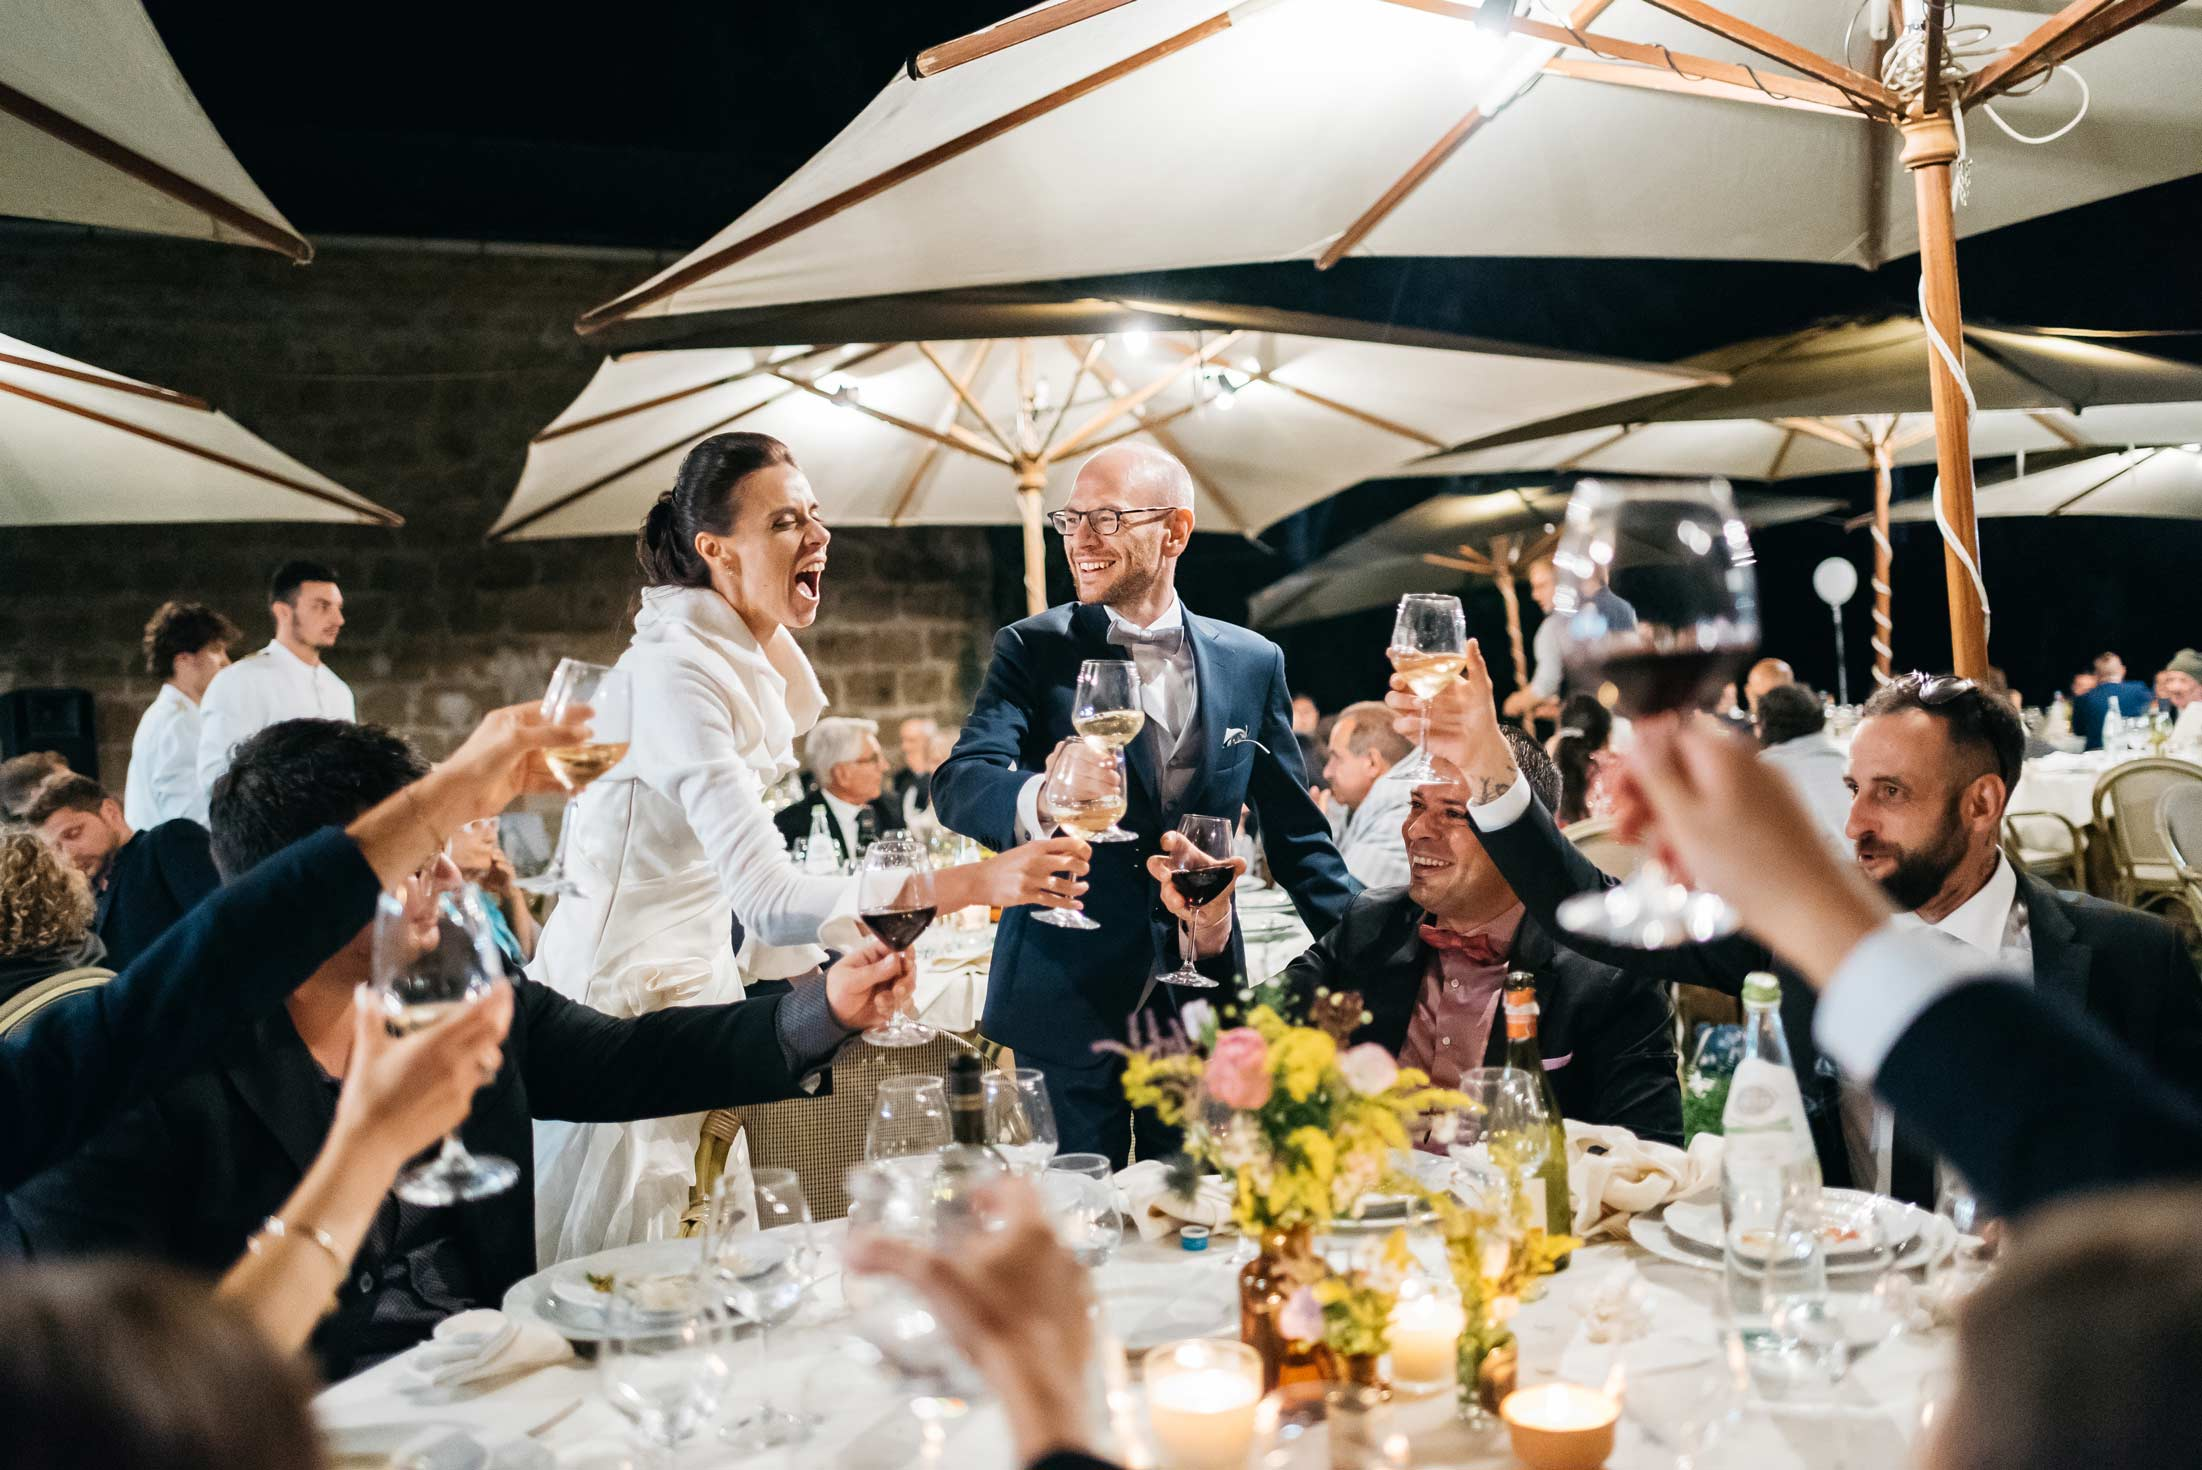 Destination-Wedding-Italy-Reportage-Wedding-Photography-Reception